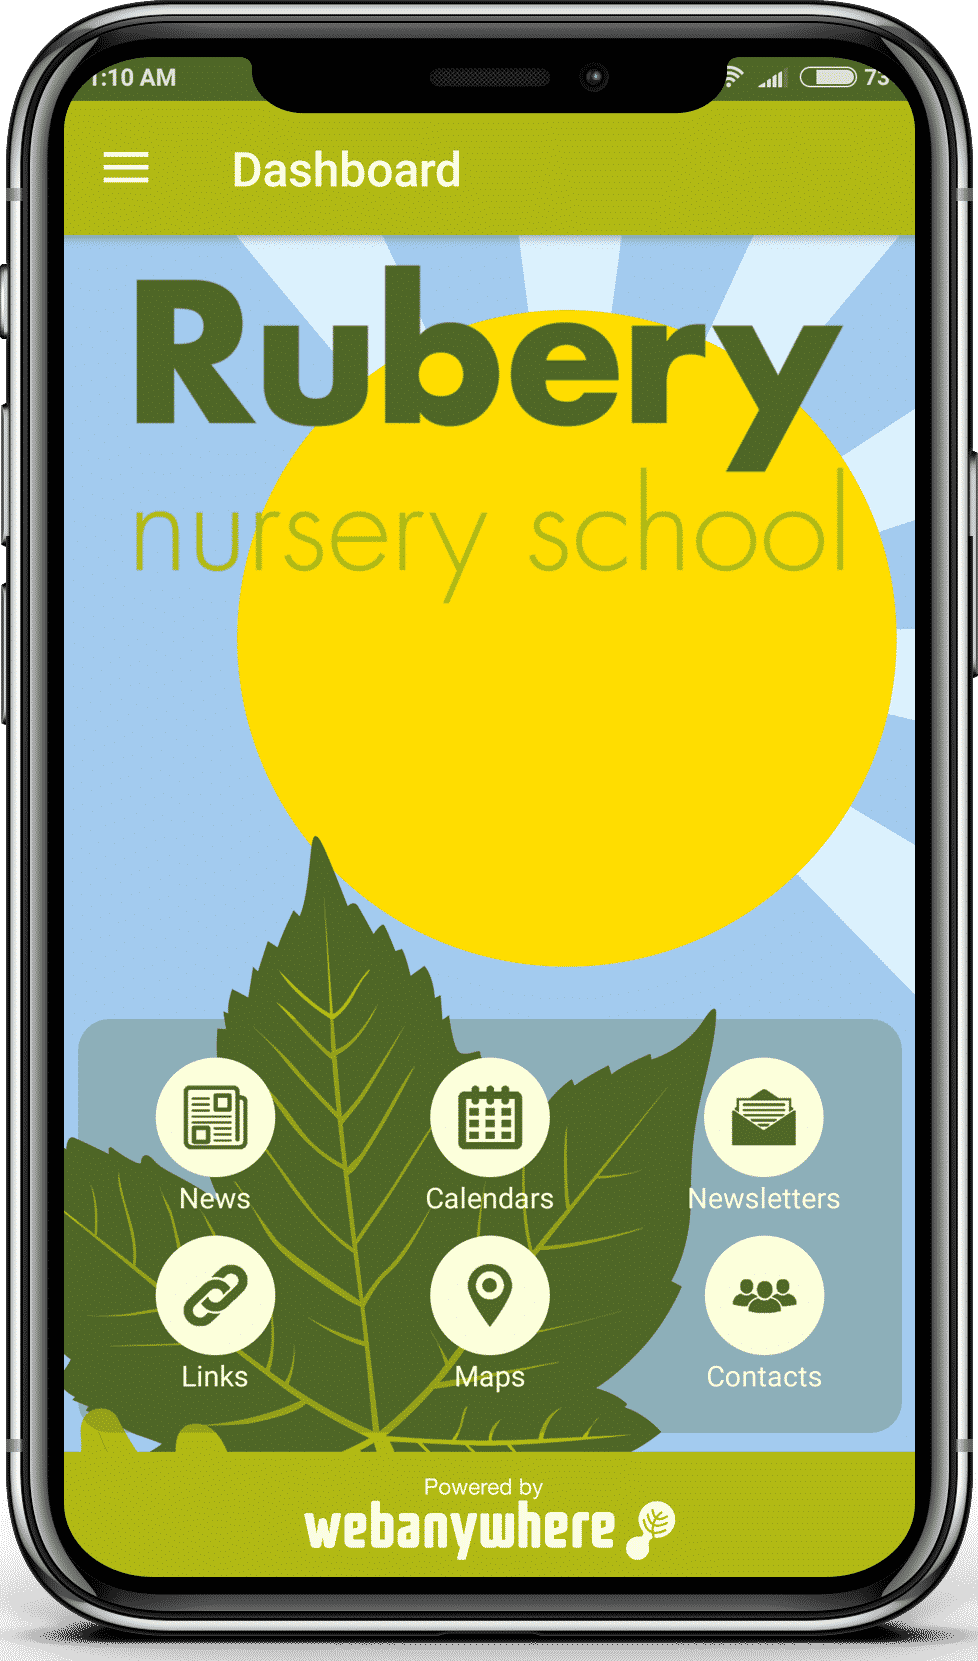 Rubery School mobile app